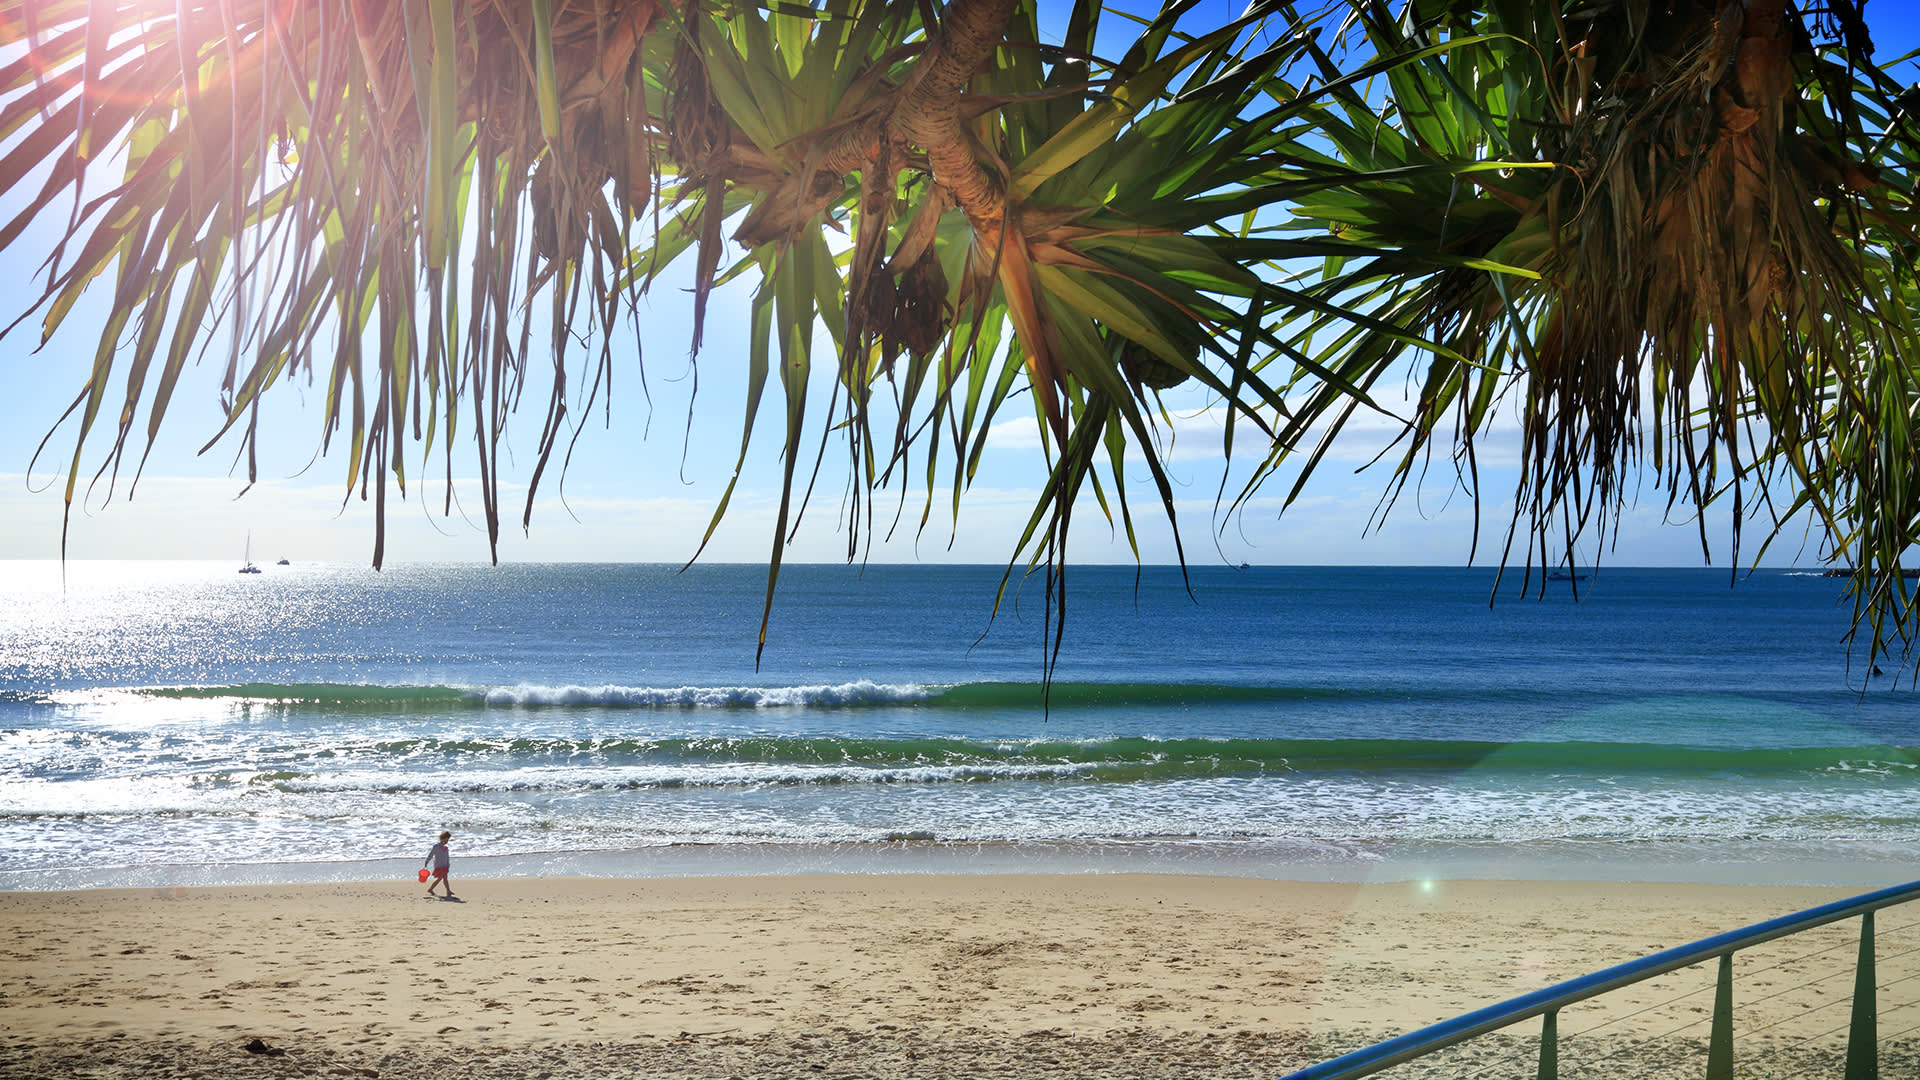 Chase an endless summer on the Sunshine Coast